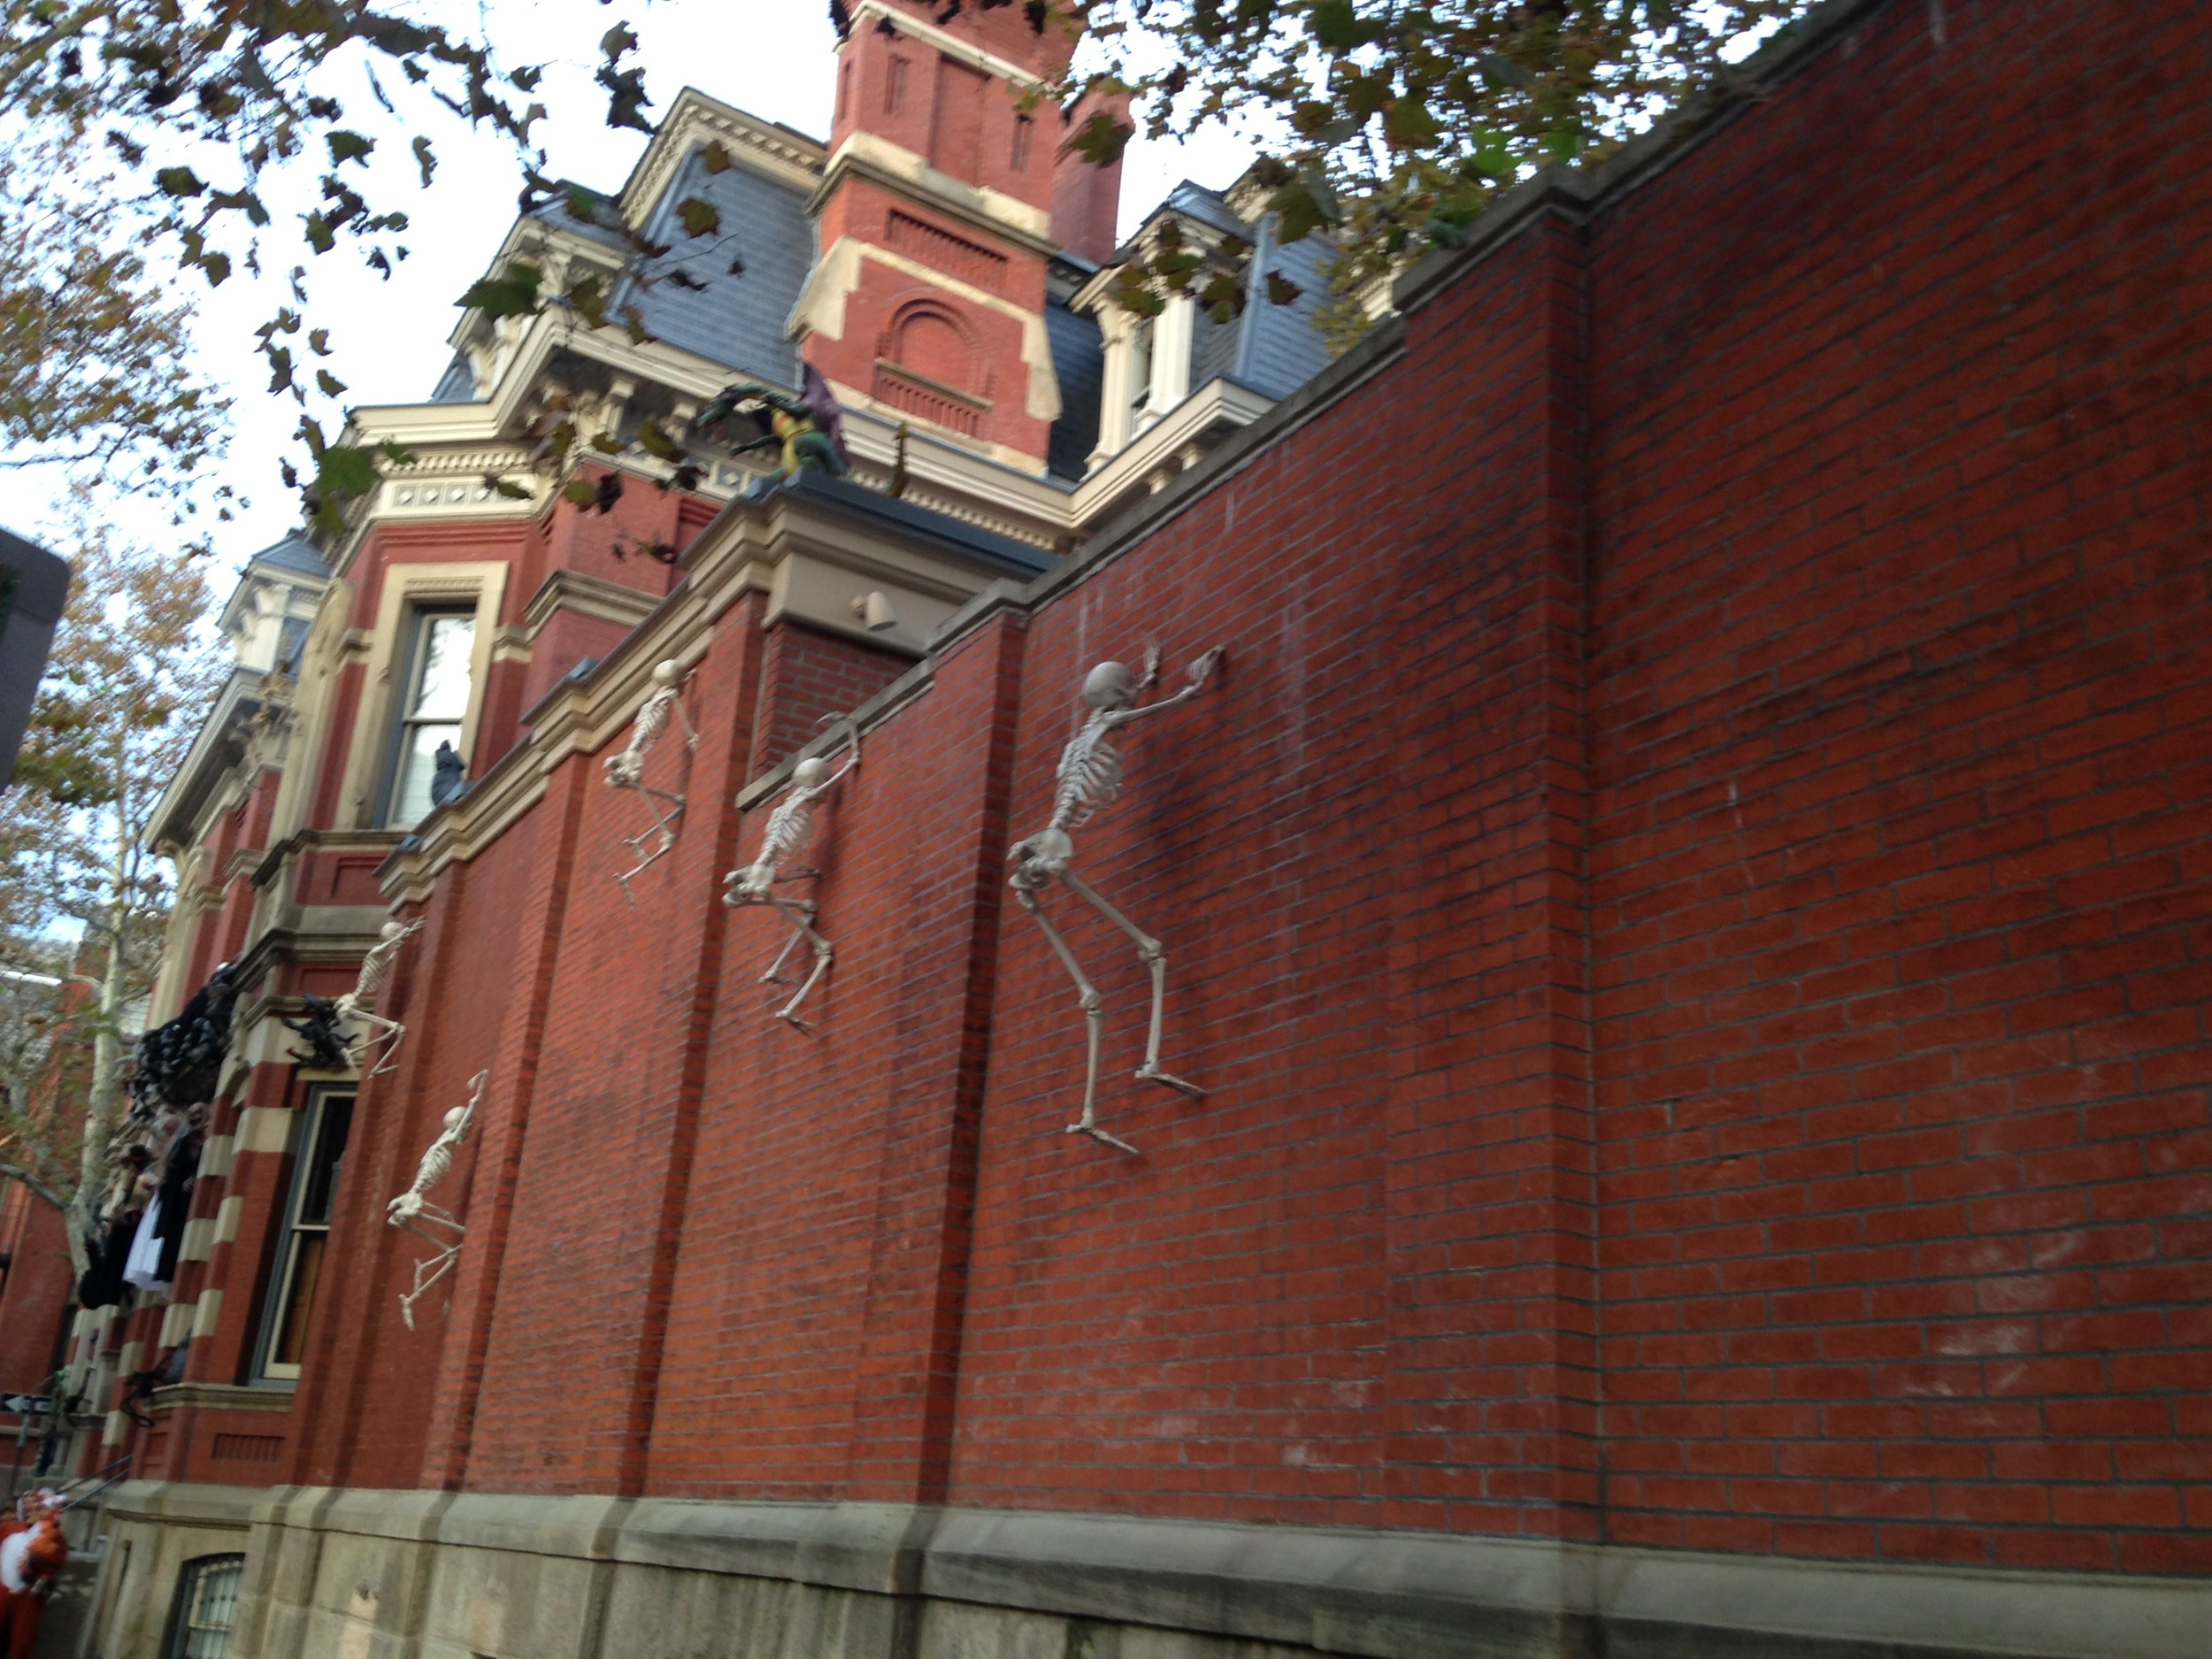 Skeletons scale the wall of this mansion